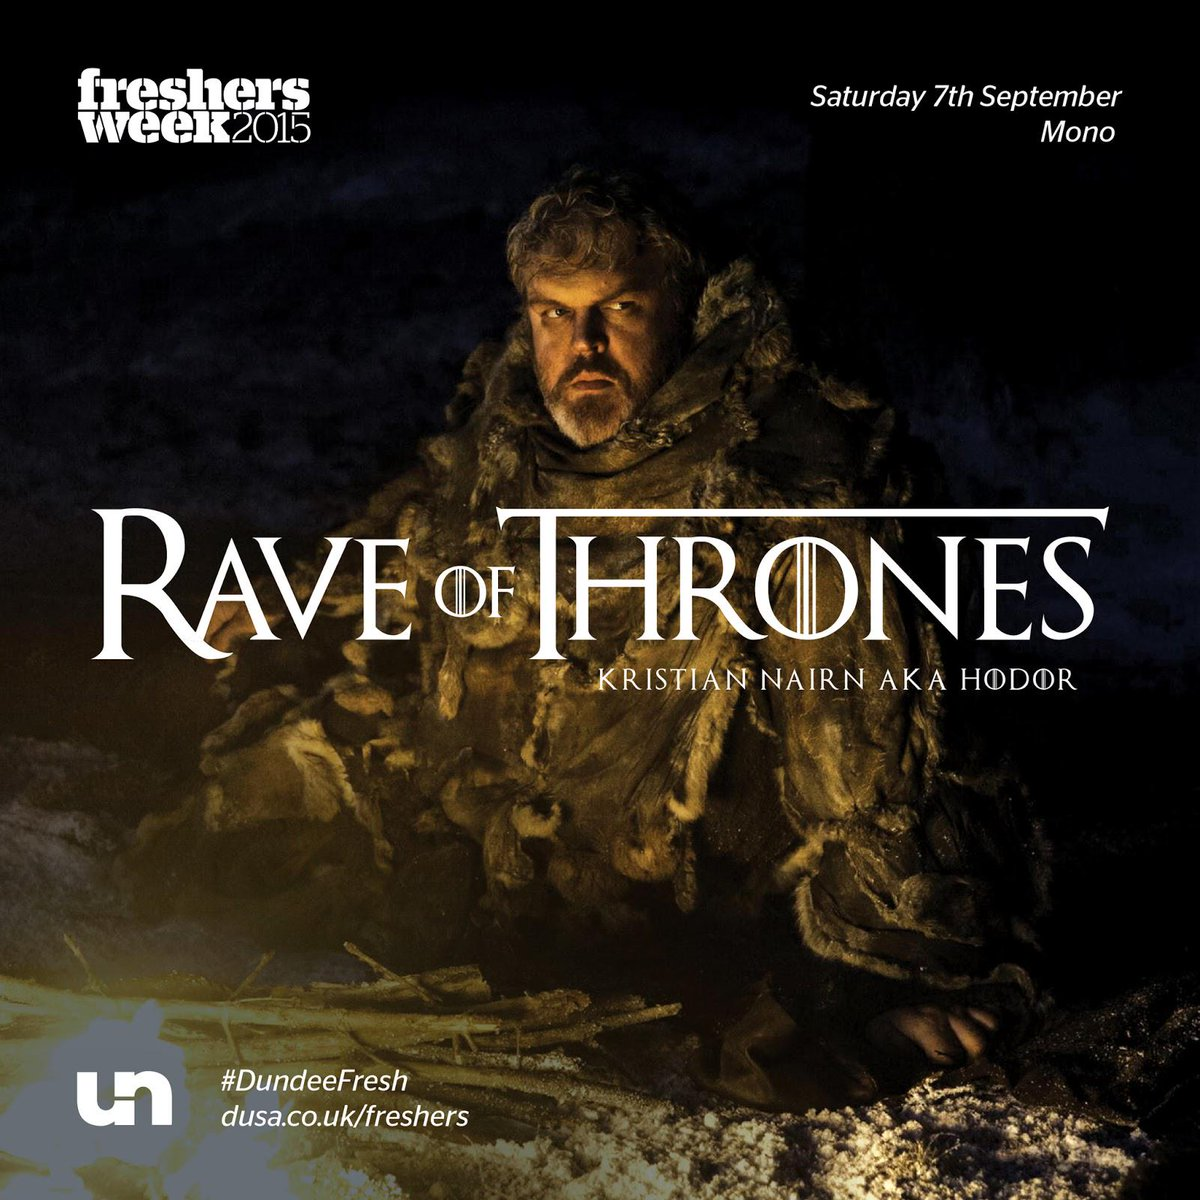 .@KristianNairn (Hodor from #GoT) @ Freshers Week! Buy ur Freshers pass http://t.co/xNW4kVkcfp & don't miss the party http://t.co/aFT5u3Ffab